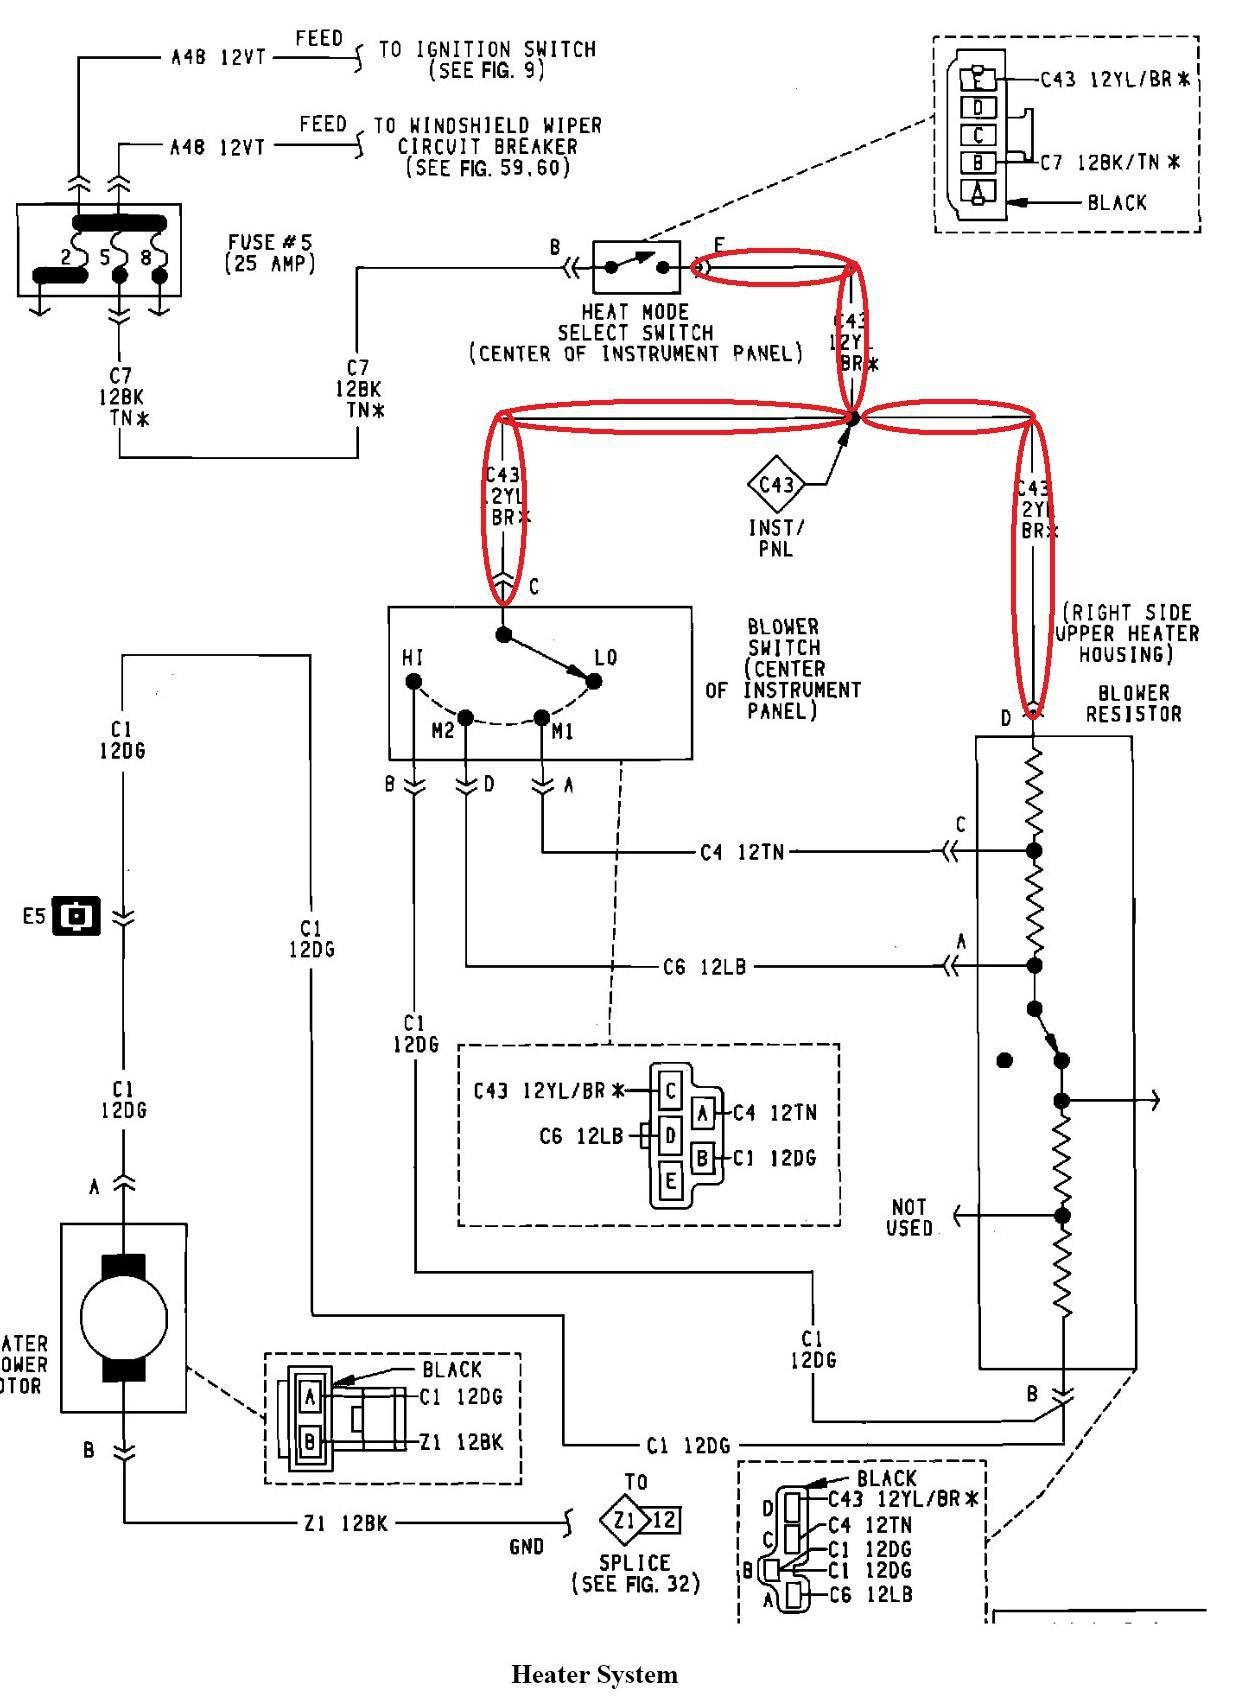 48 volt wiring diagram reducer wiring diagram host club car 48 volt to 12 volt reducer wiring diagram wiring diagram 48 volt to 12 volt reducer wiring diagram 48 volt wiring diagram reducer